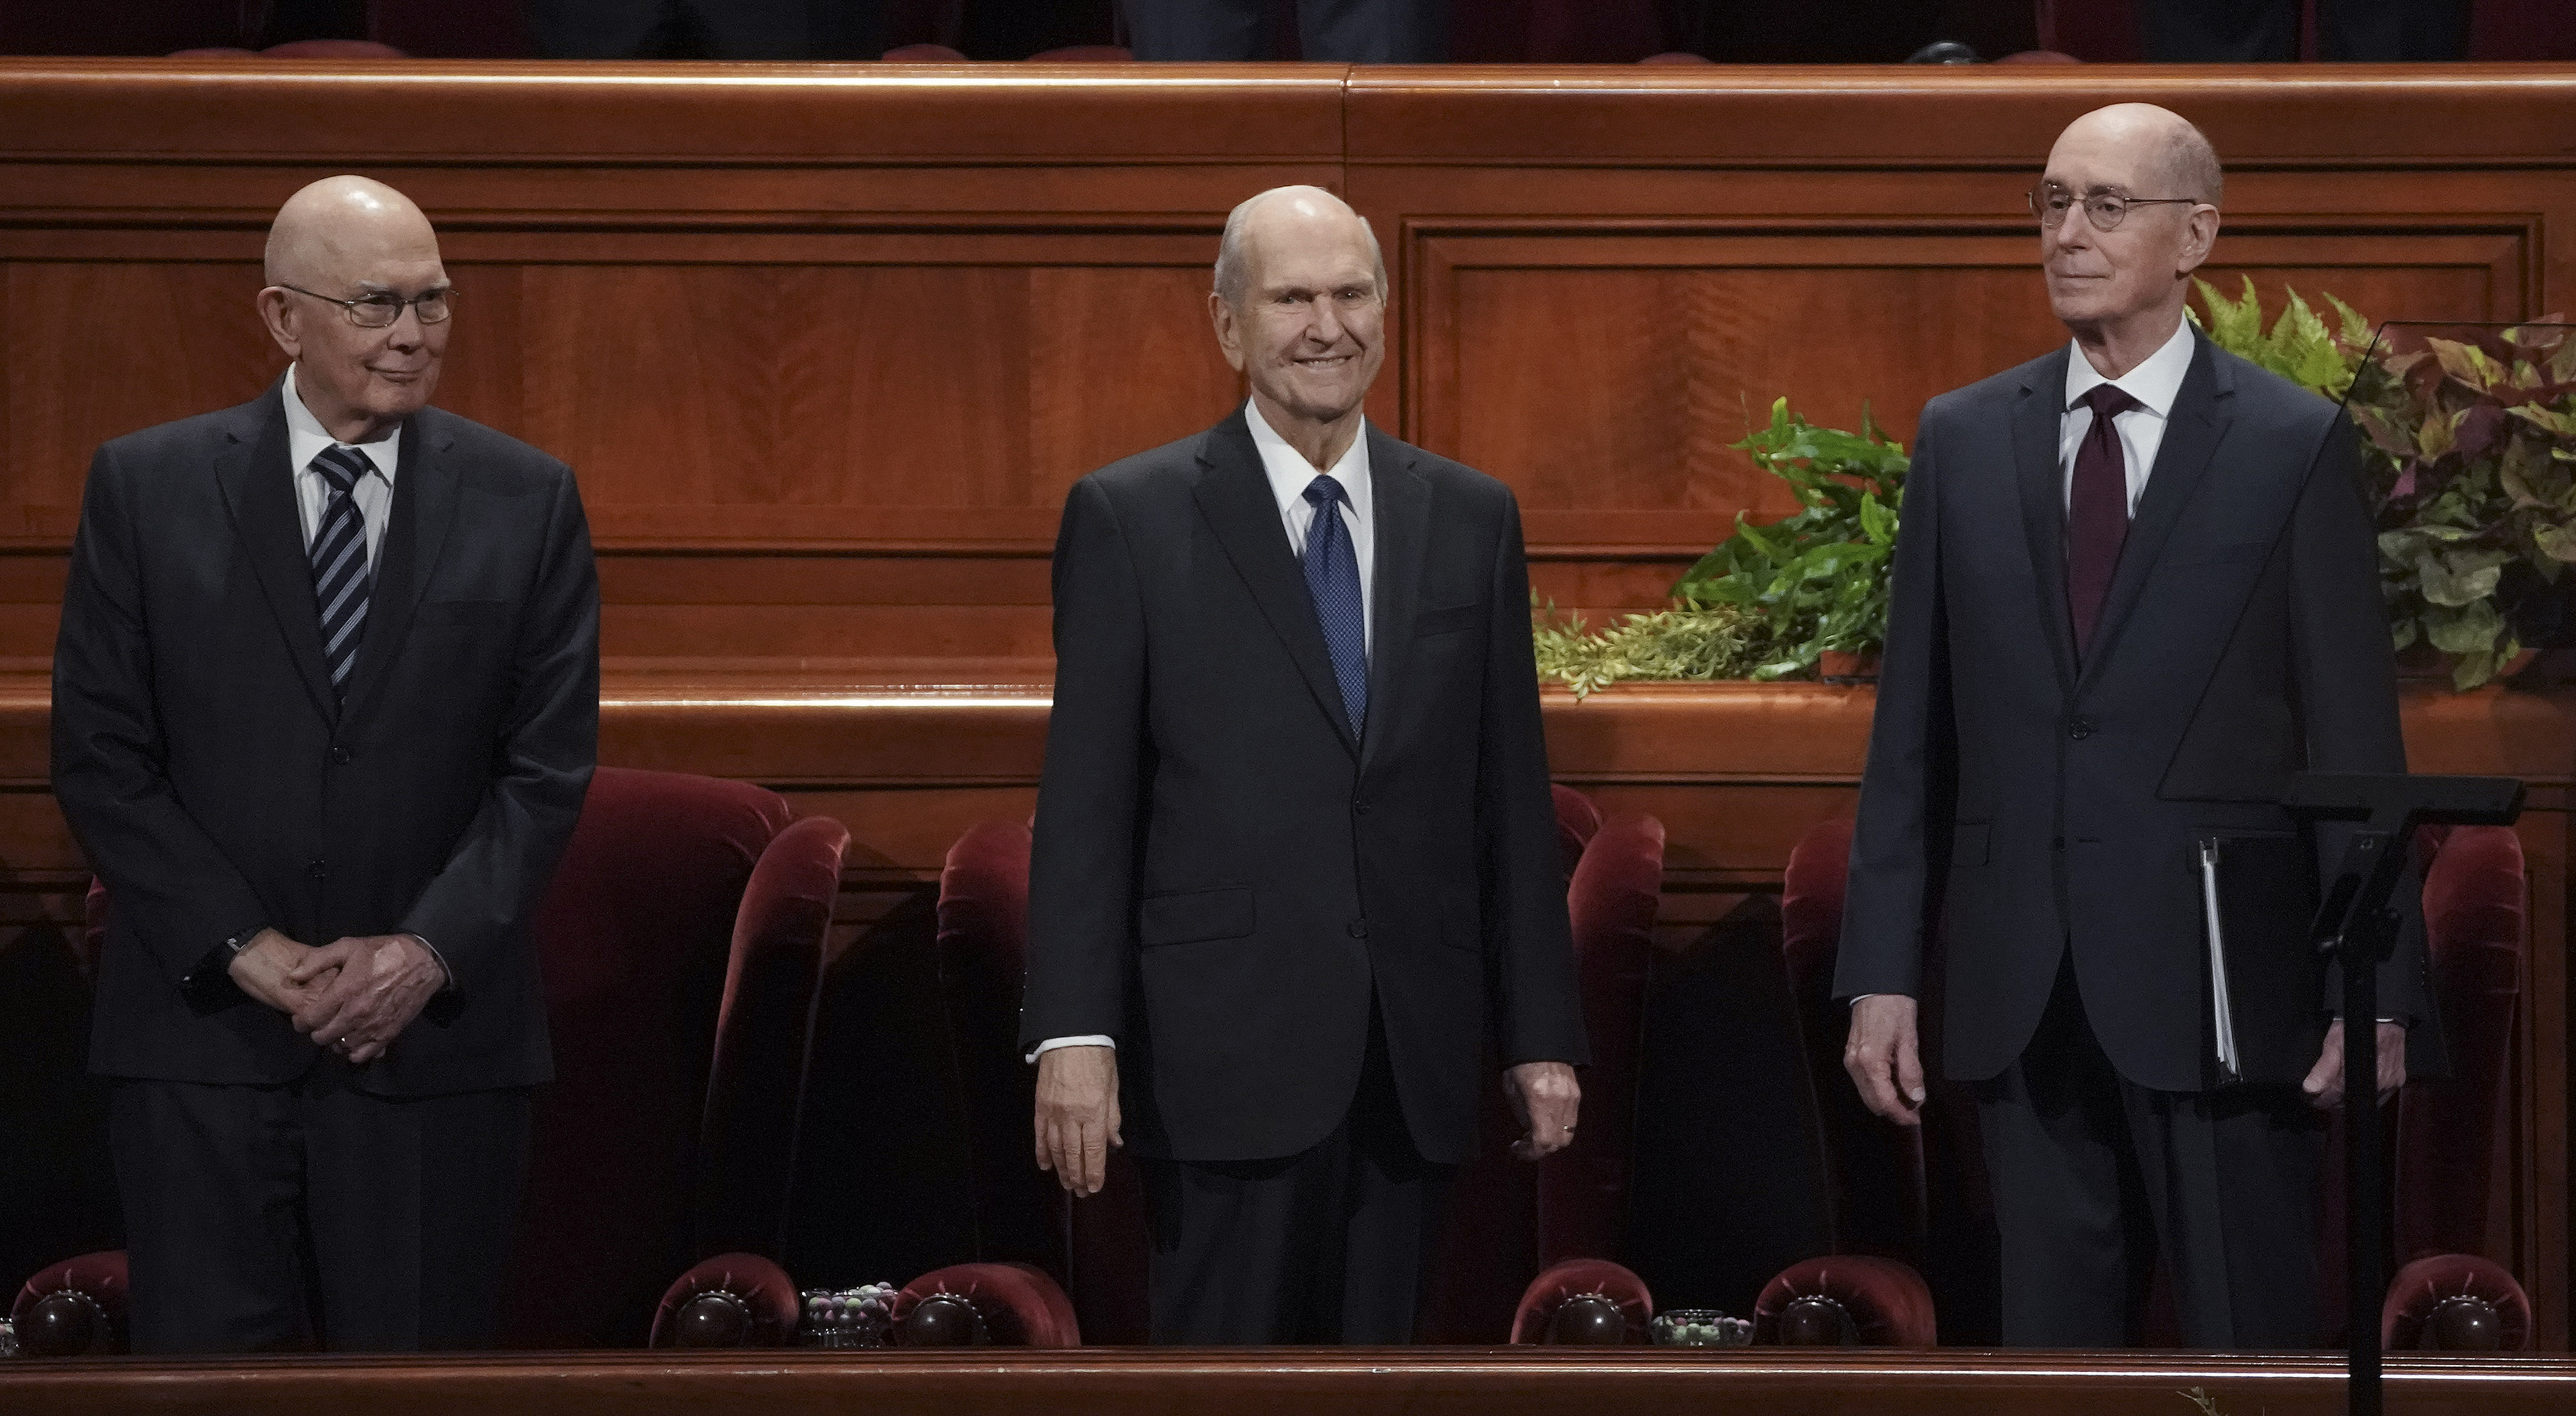 President Russell M. Nelson, center, and his counselors, President Dallin H. Oaks, first counselor in the First Presidency, left, and President Henry B. Eyring, second counselor in the First Presidency, right, stand during the 189th Semiannual General Conference of The Church of Jesus Christ of Latter-day Saints in the Conference Center in Salt Lake City on Sunday, Oct. 6, 2019.